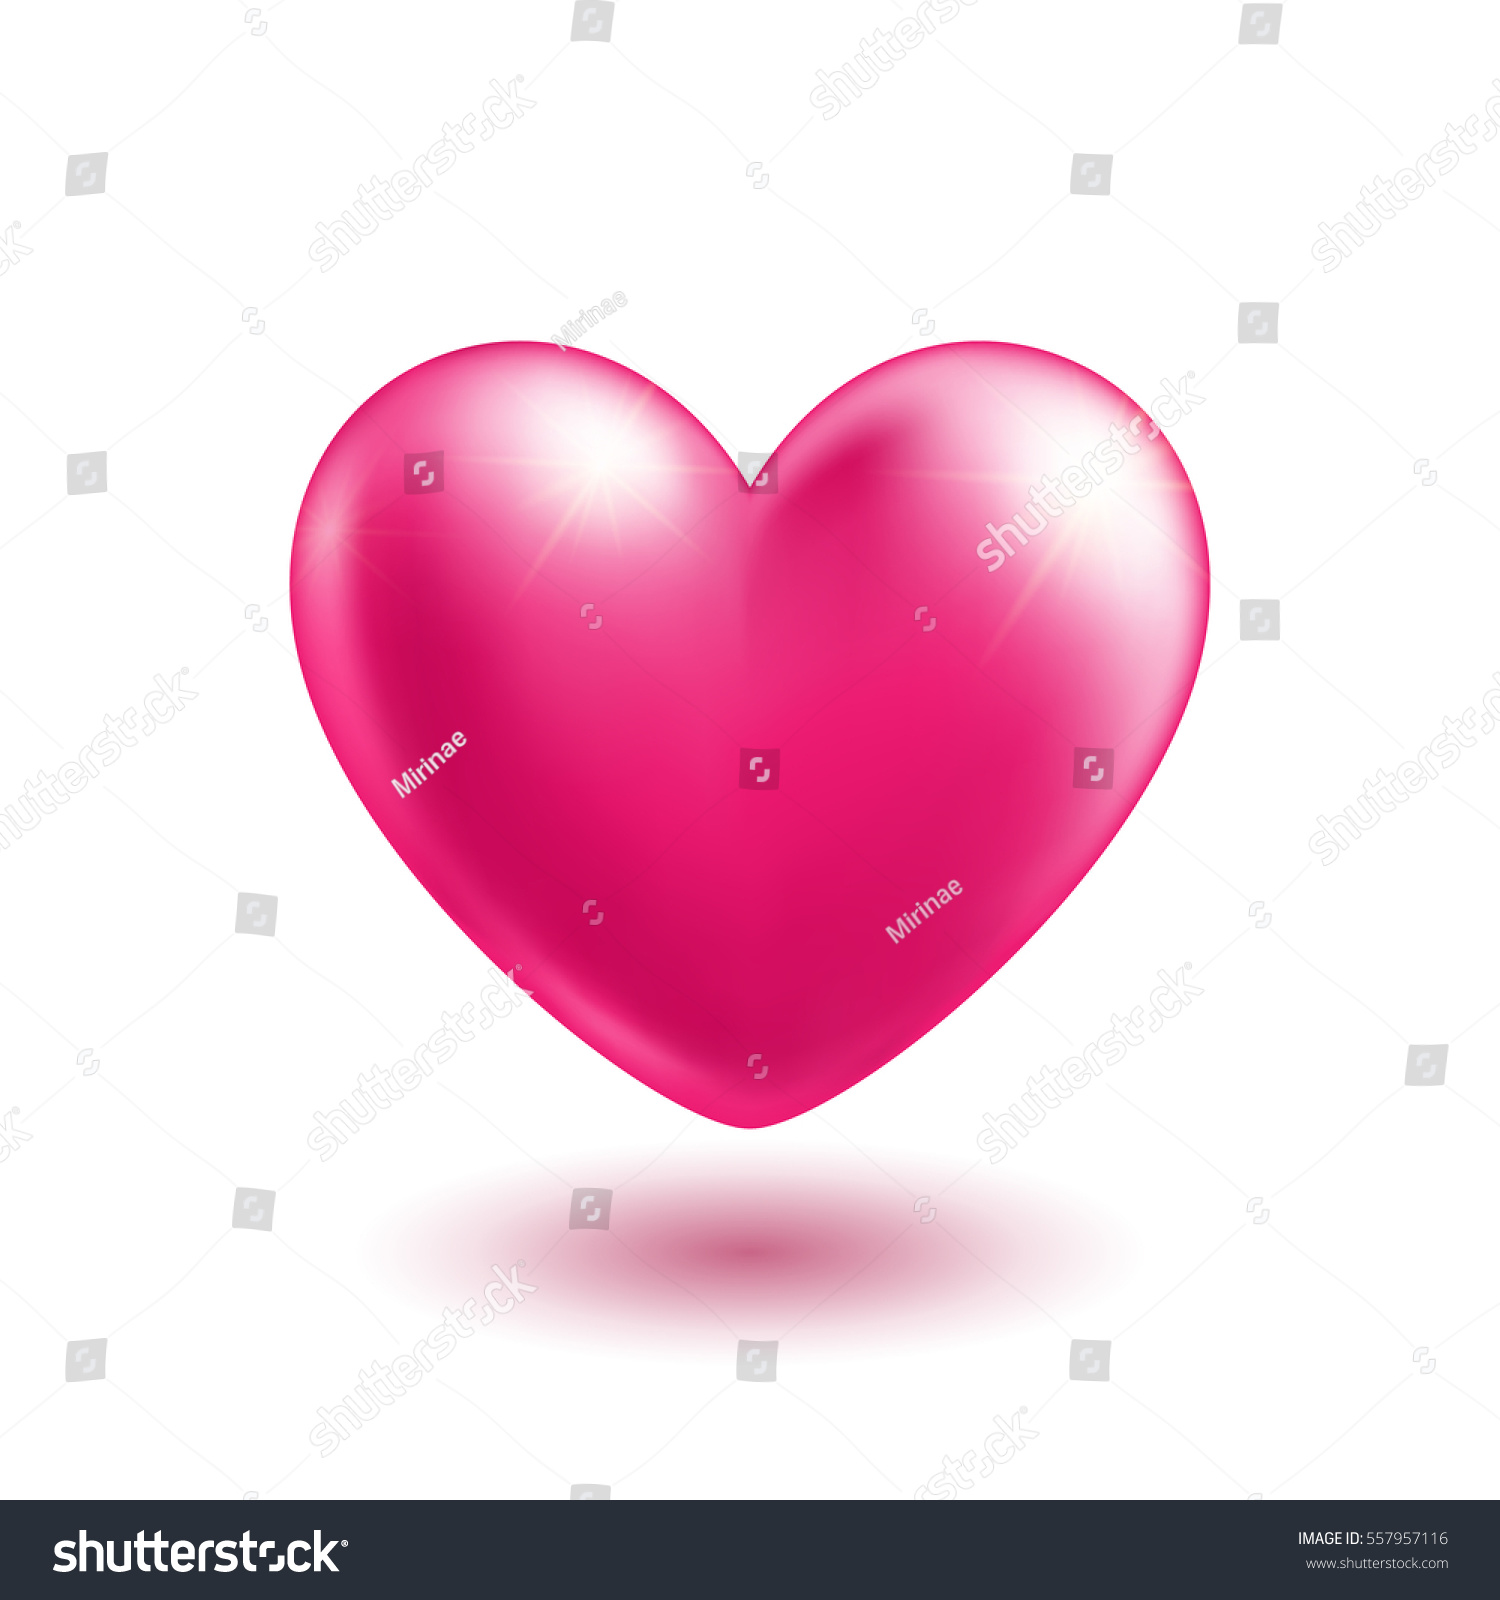 Big pink heart soft shadow love stock vector 557957116 shutterstock big pink heart with soft shadow love symbol realistic design isolated element on buycottarizona Image collections